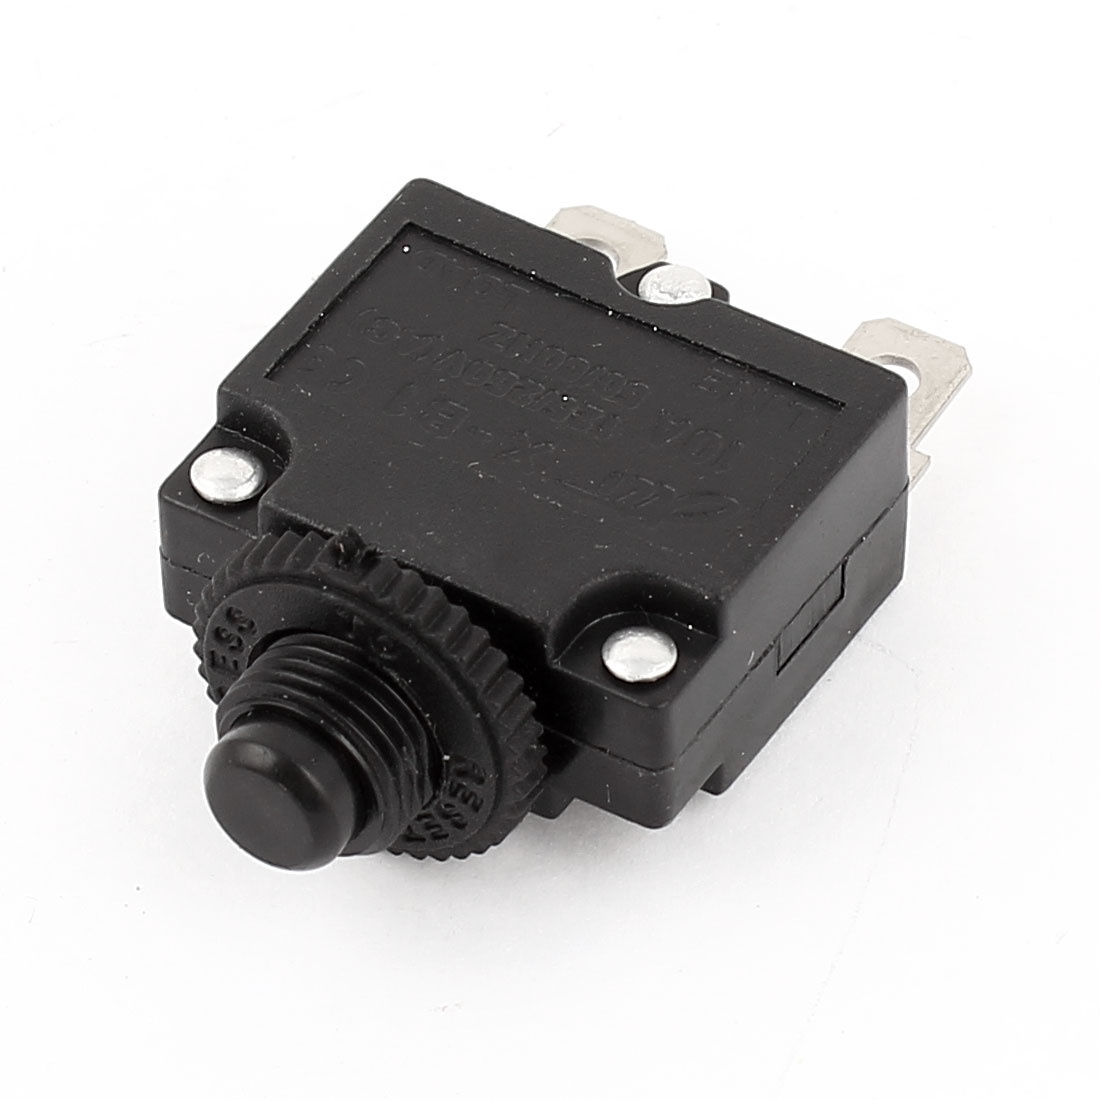 45mm x 28mm x 13mm DIP PCB Round Pushbutton 2 Terminal Momentary Tactile Switch Black AC125V-250V 10A